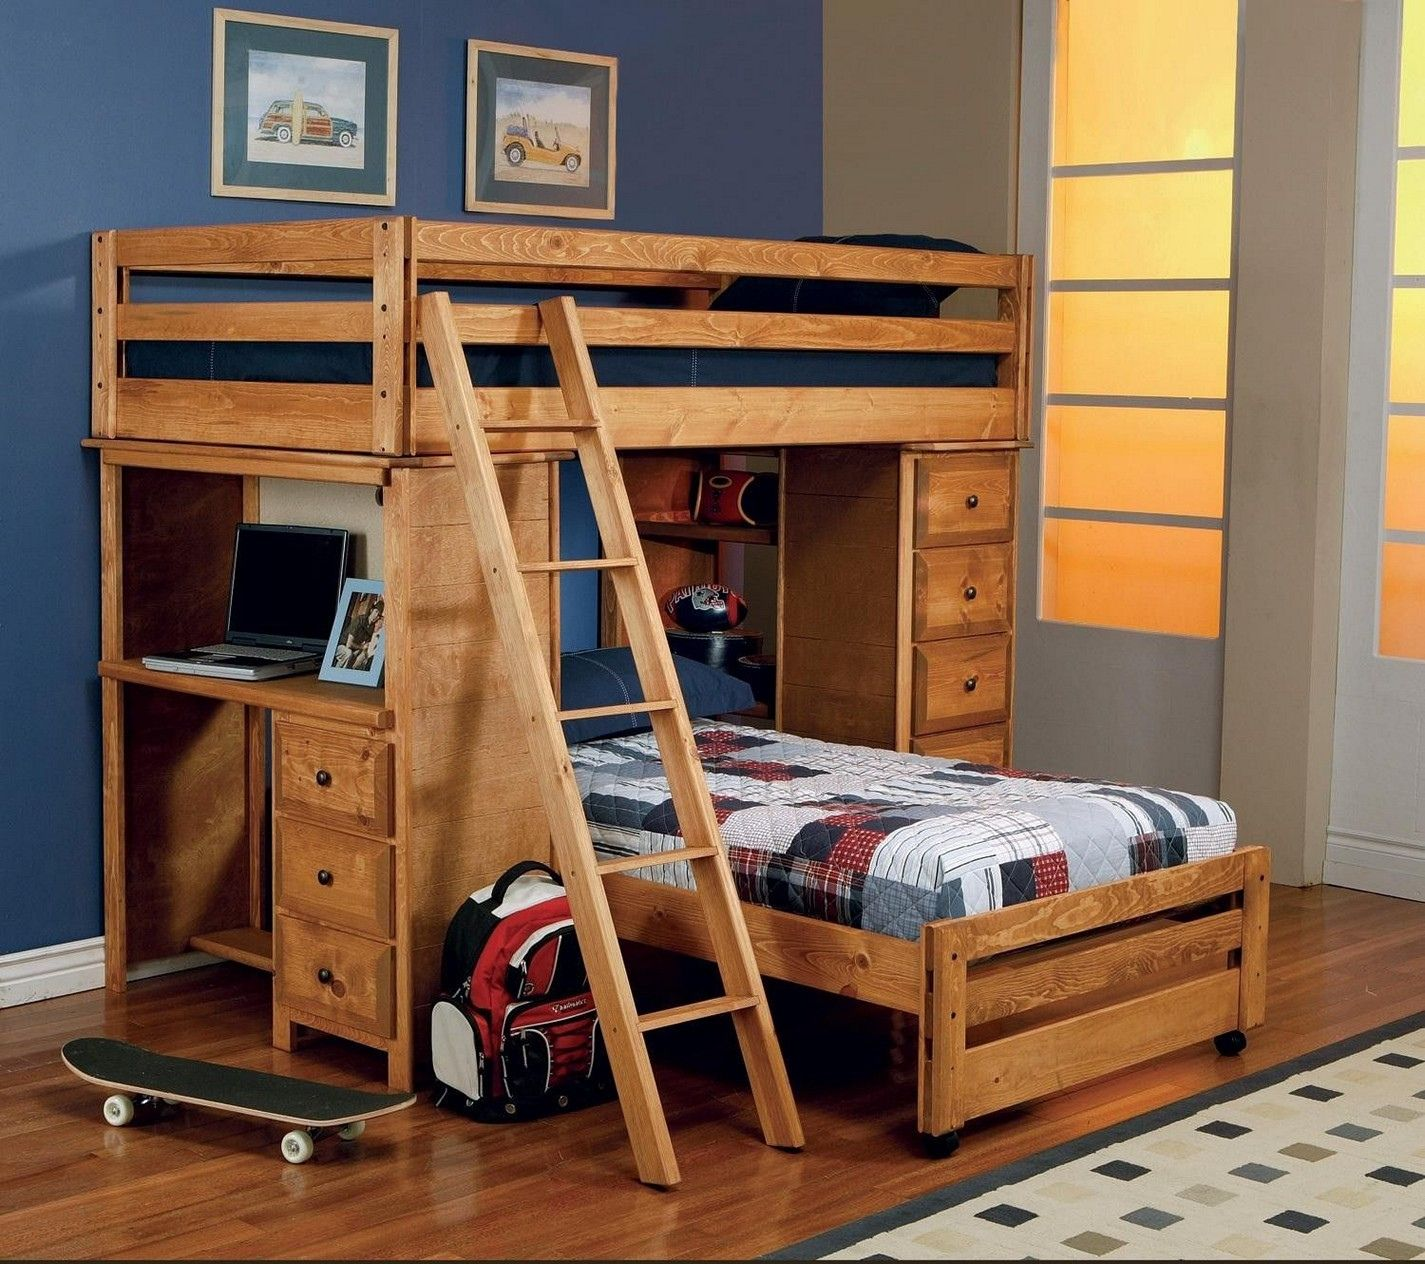 Cool Bunk Beds for Small Rooms - Best Interior Paint nds Check ...